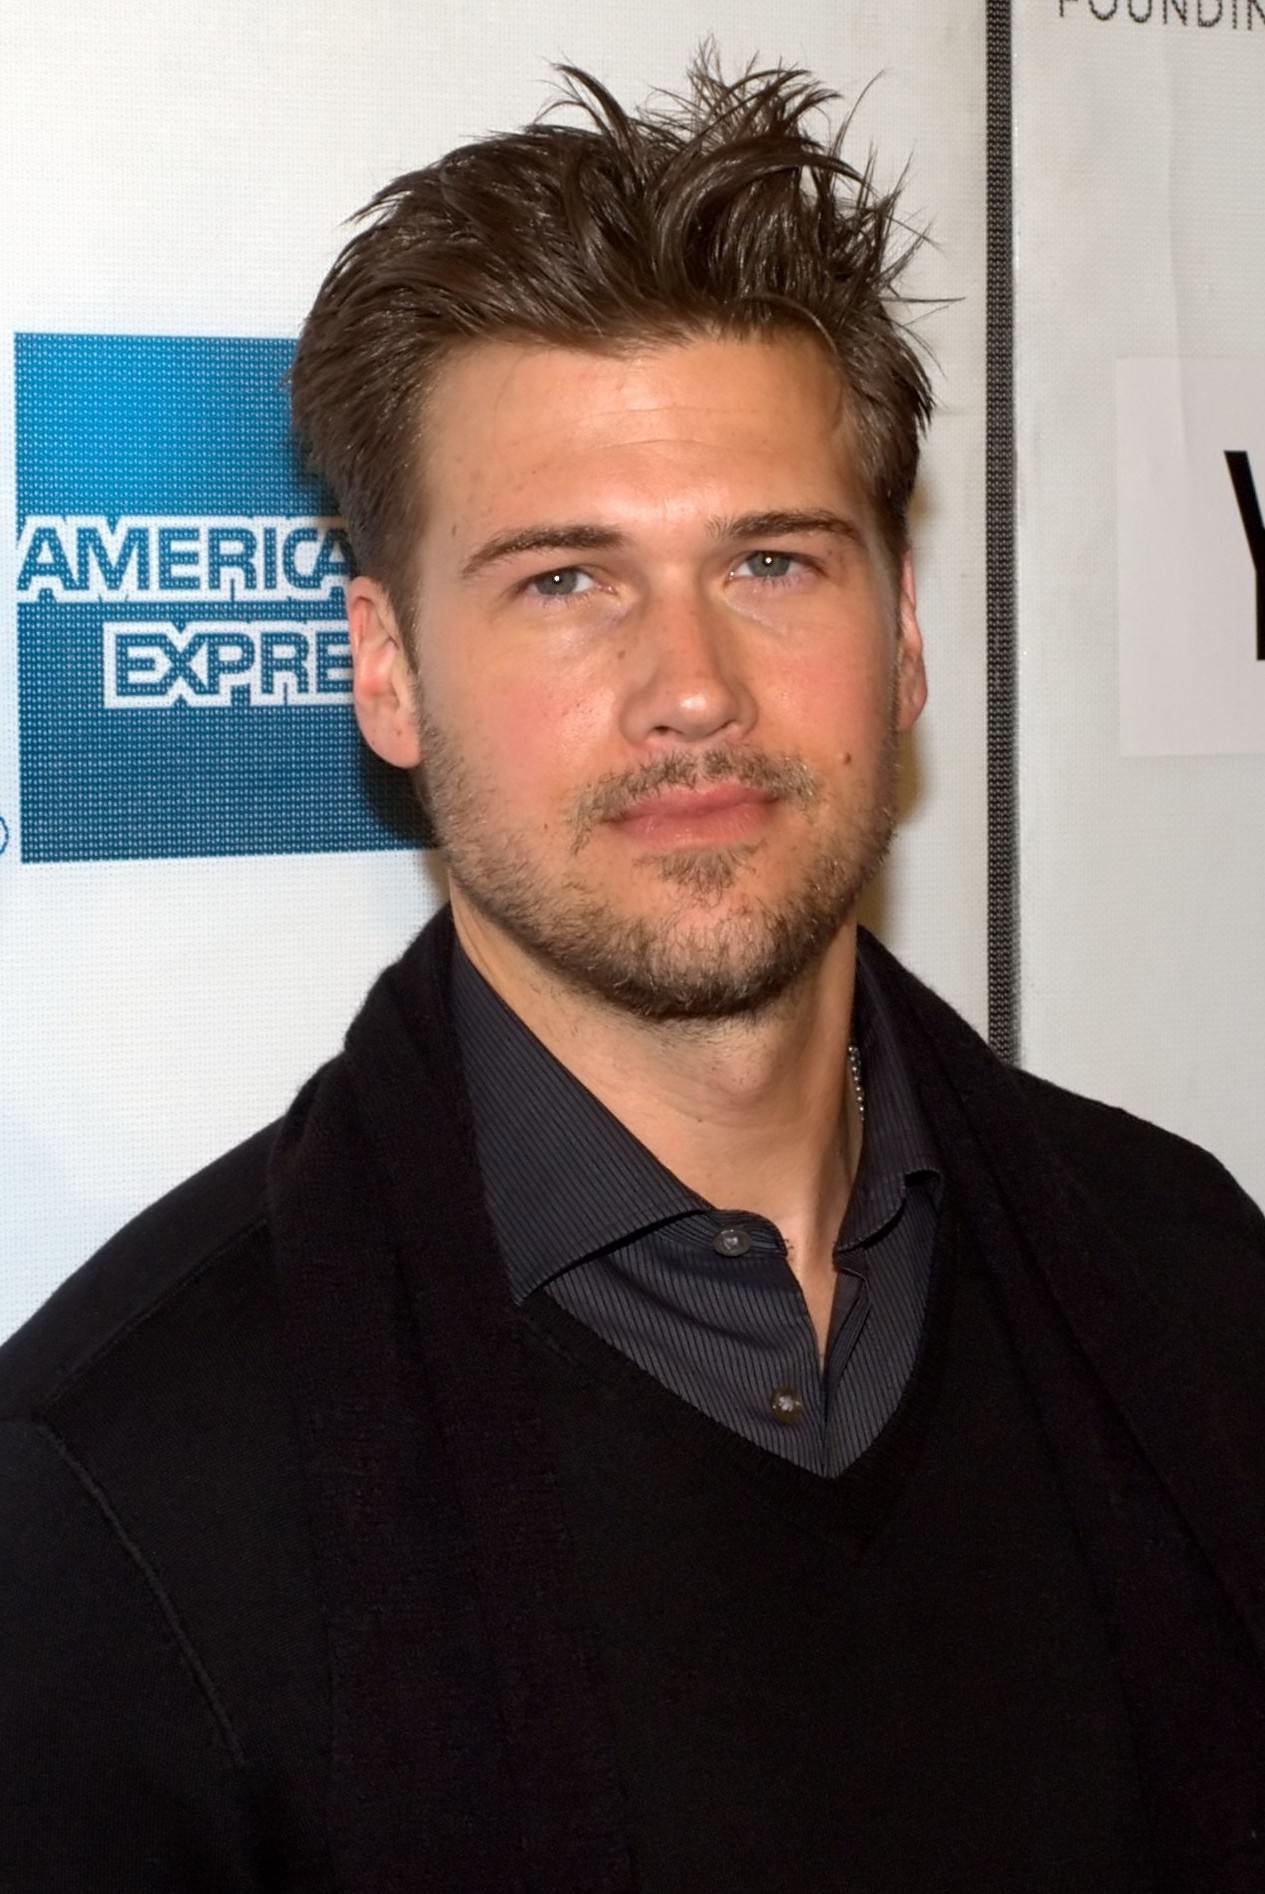 http://upload.wikimedia.org/wikipedia/commons/3/34/Nick_Zano_by_David_Shankbone.jpg